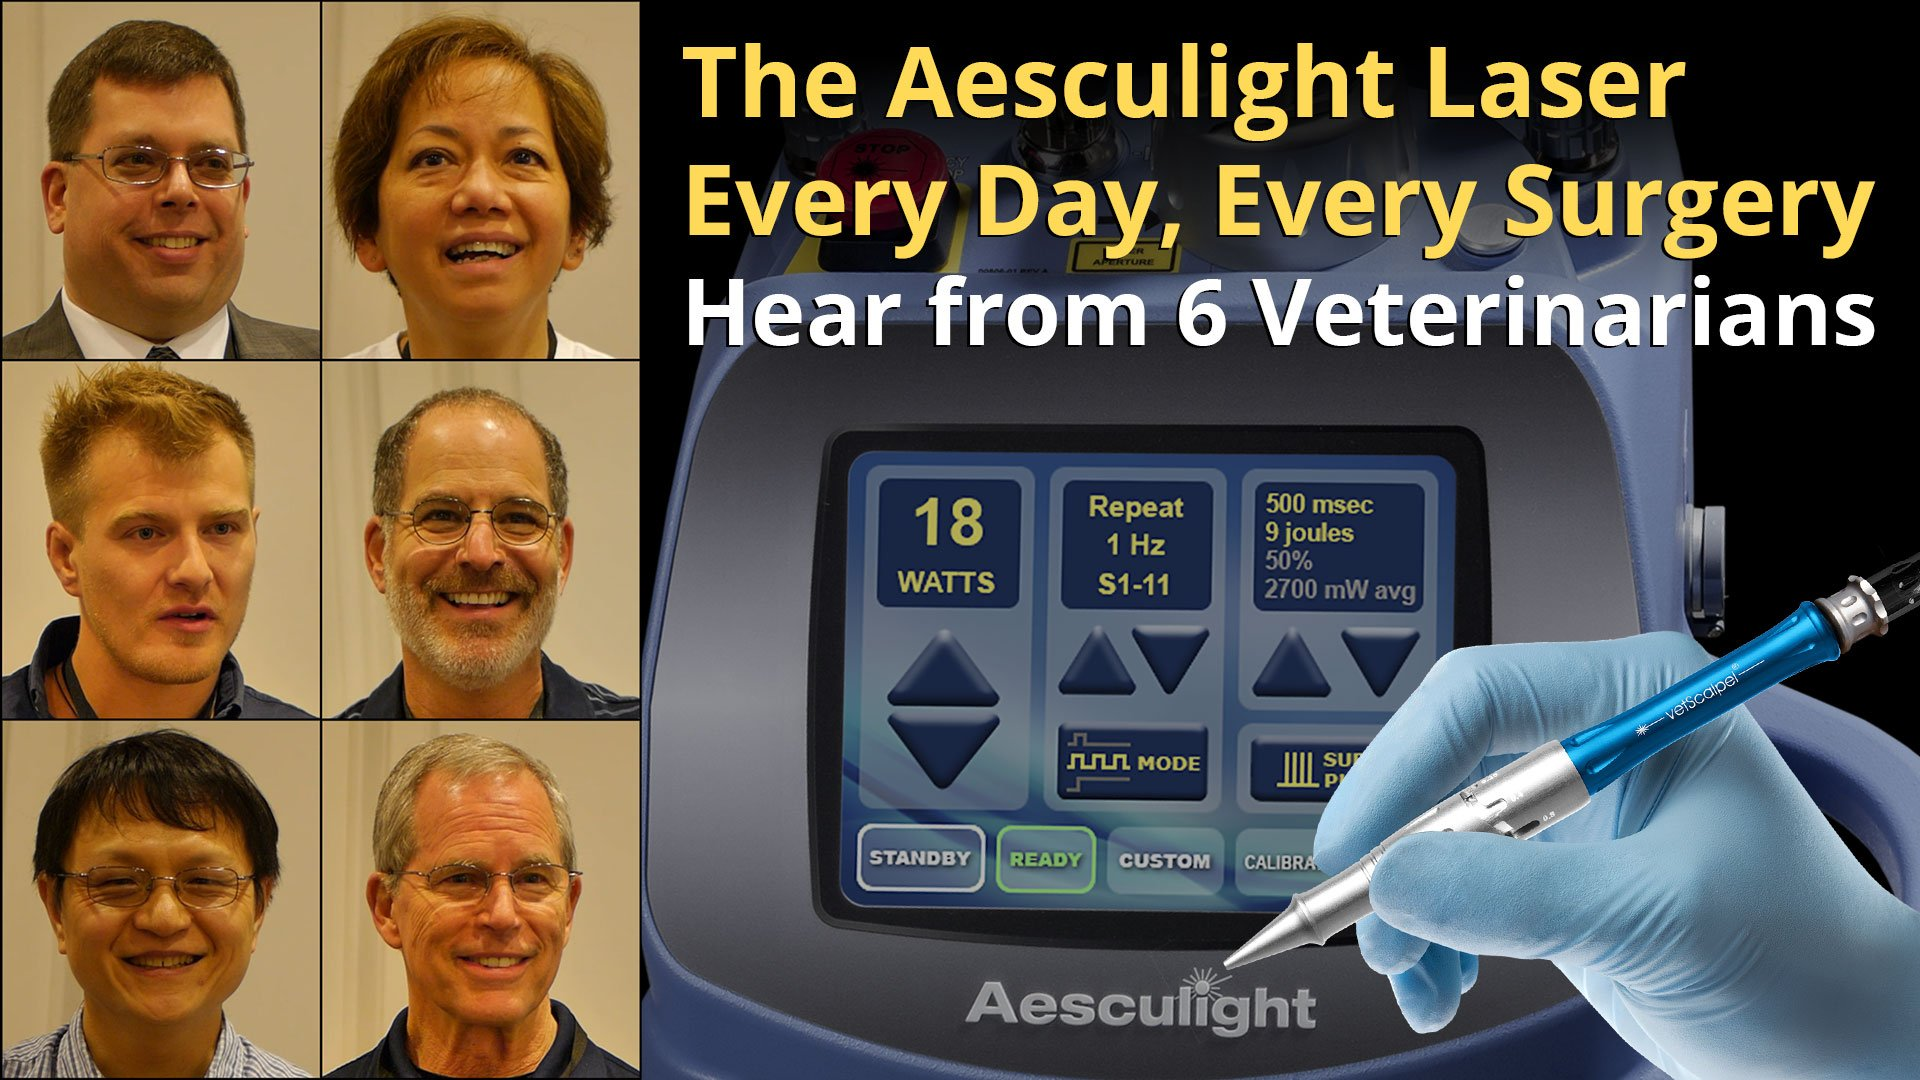 The Aesculight Laser - Every Day, Every Surgery